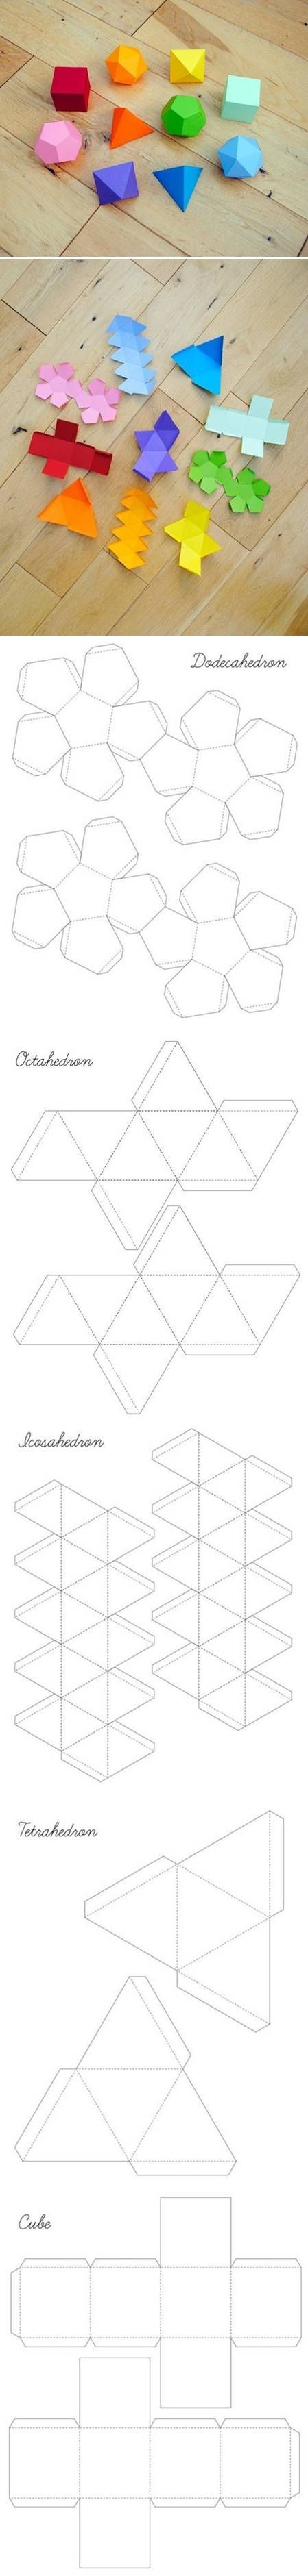 DIY-Geometrical-Box-Templates.jpg 449×3,761ピクセル